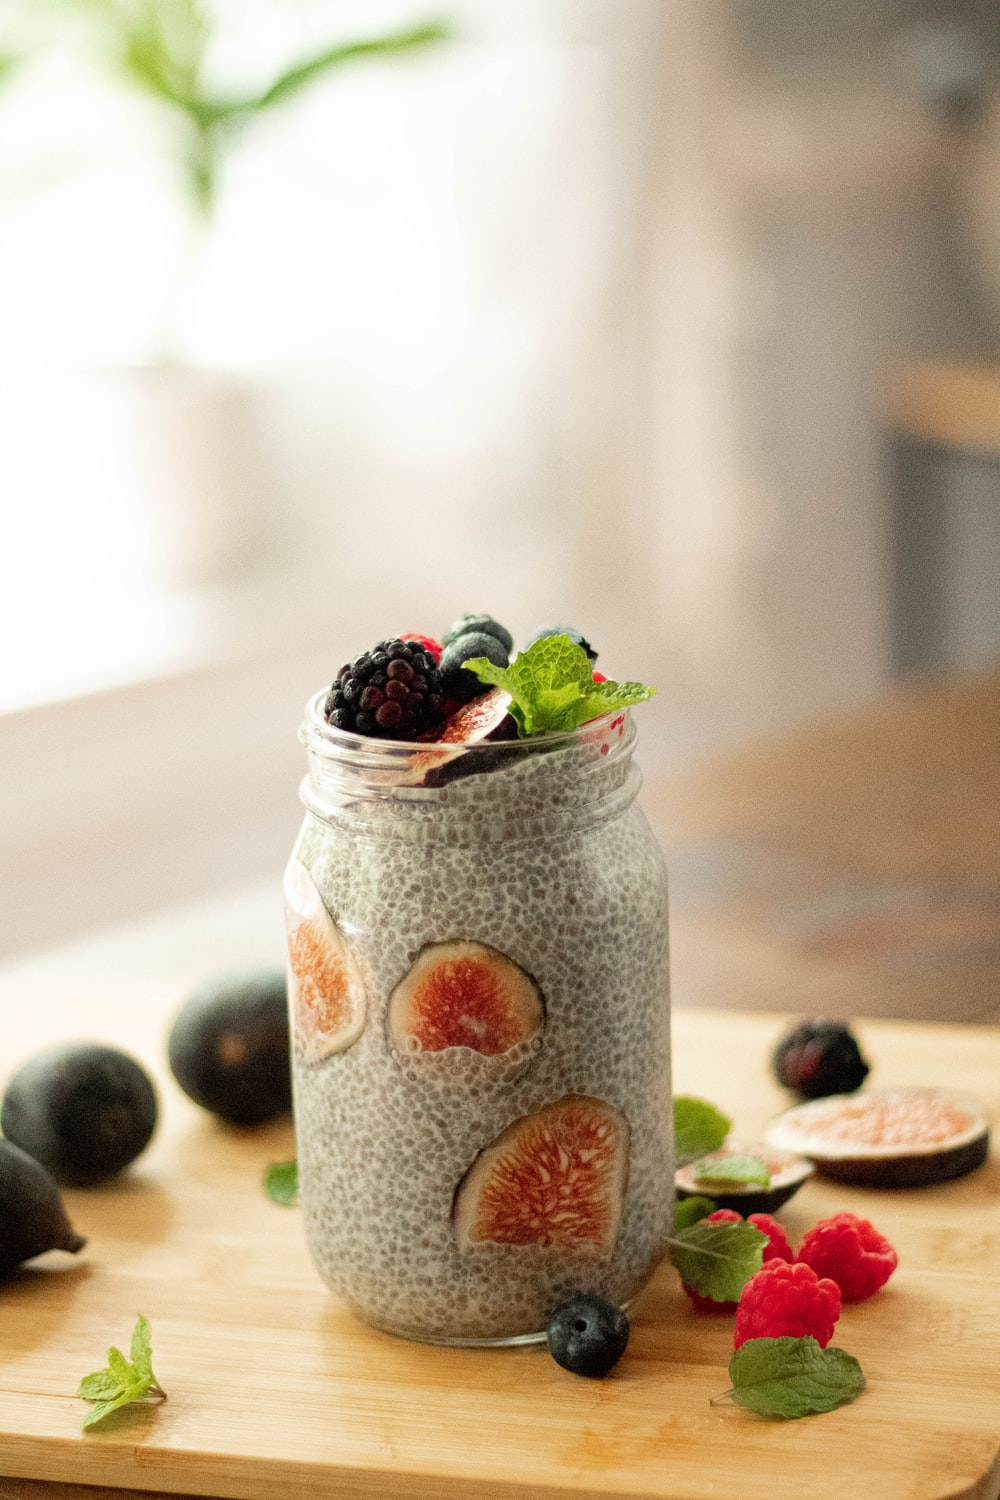 raspberry and blueberry in clear glass cup